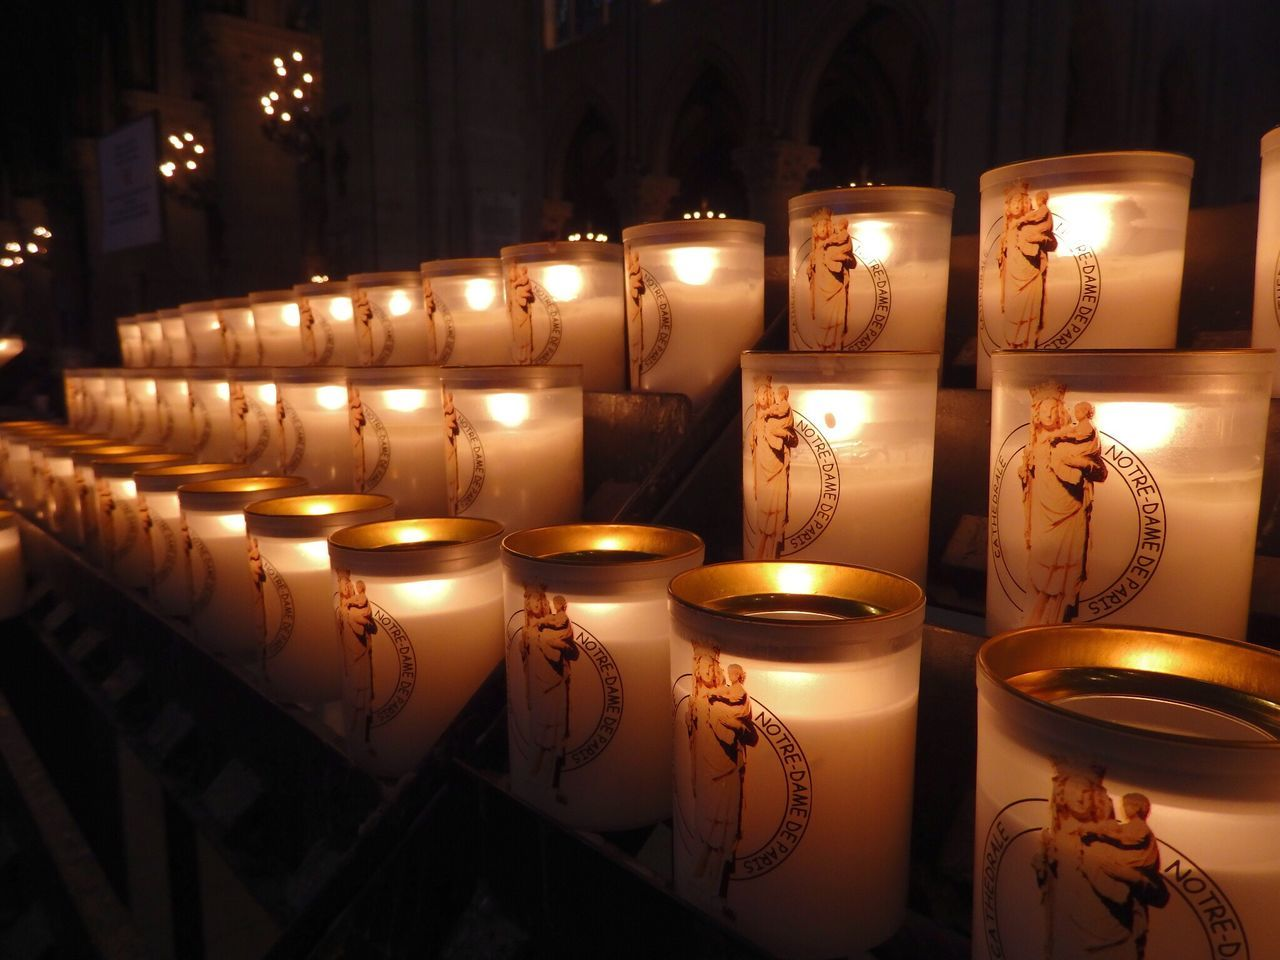 Notre Dame De Paris Candle Light Inside The Notre Dame De Paris Such A Beautiful Place A Must See Place Hello World Enjoying Life Keep Calm And Respectful Paris, France  Europe 43 Golden Moments